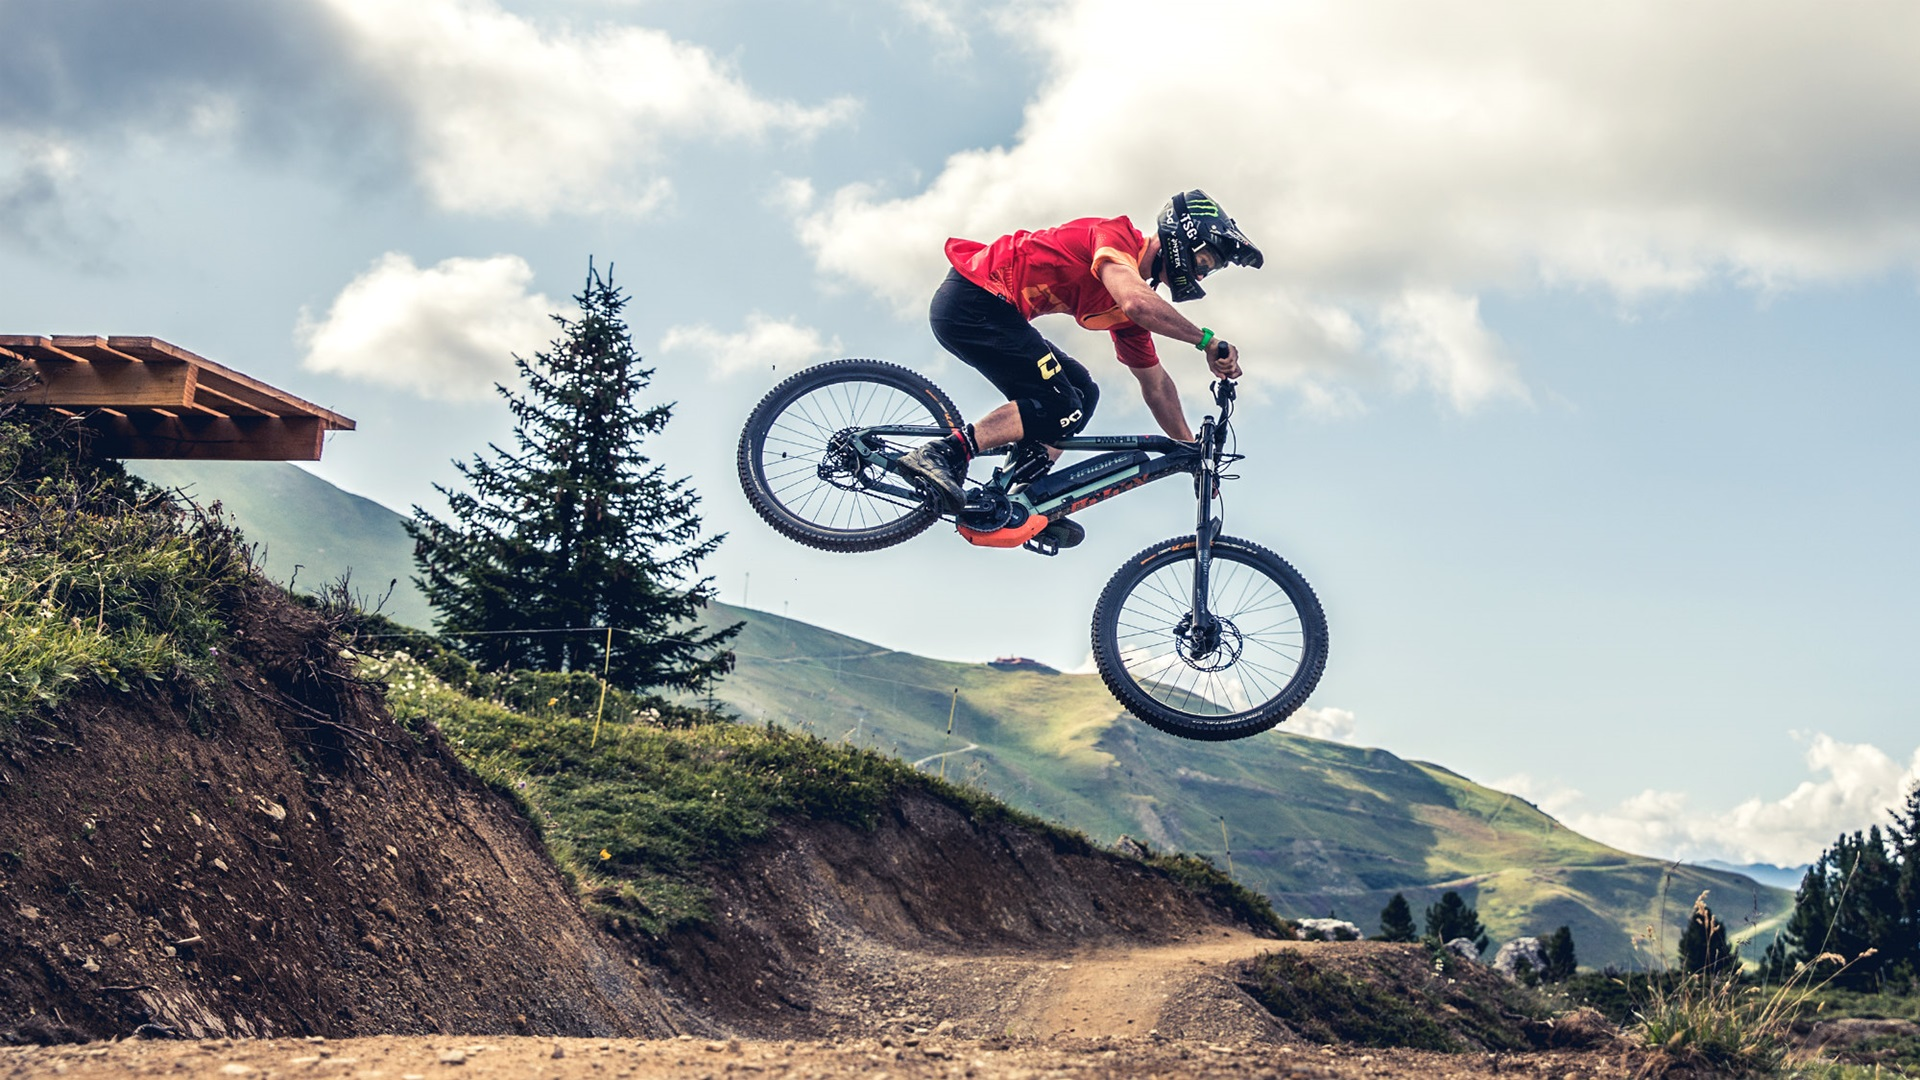 Haibike Xduro Downhill E-mountainbikes